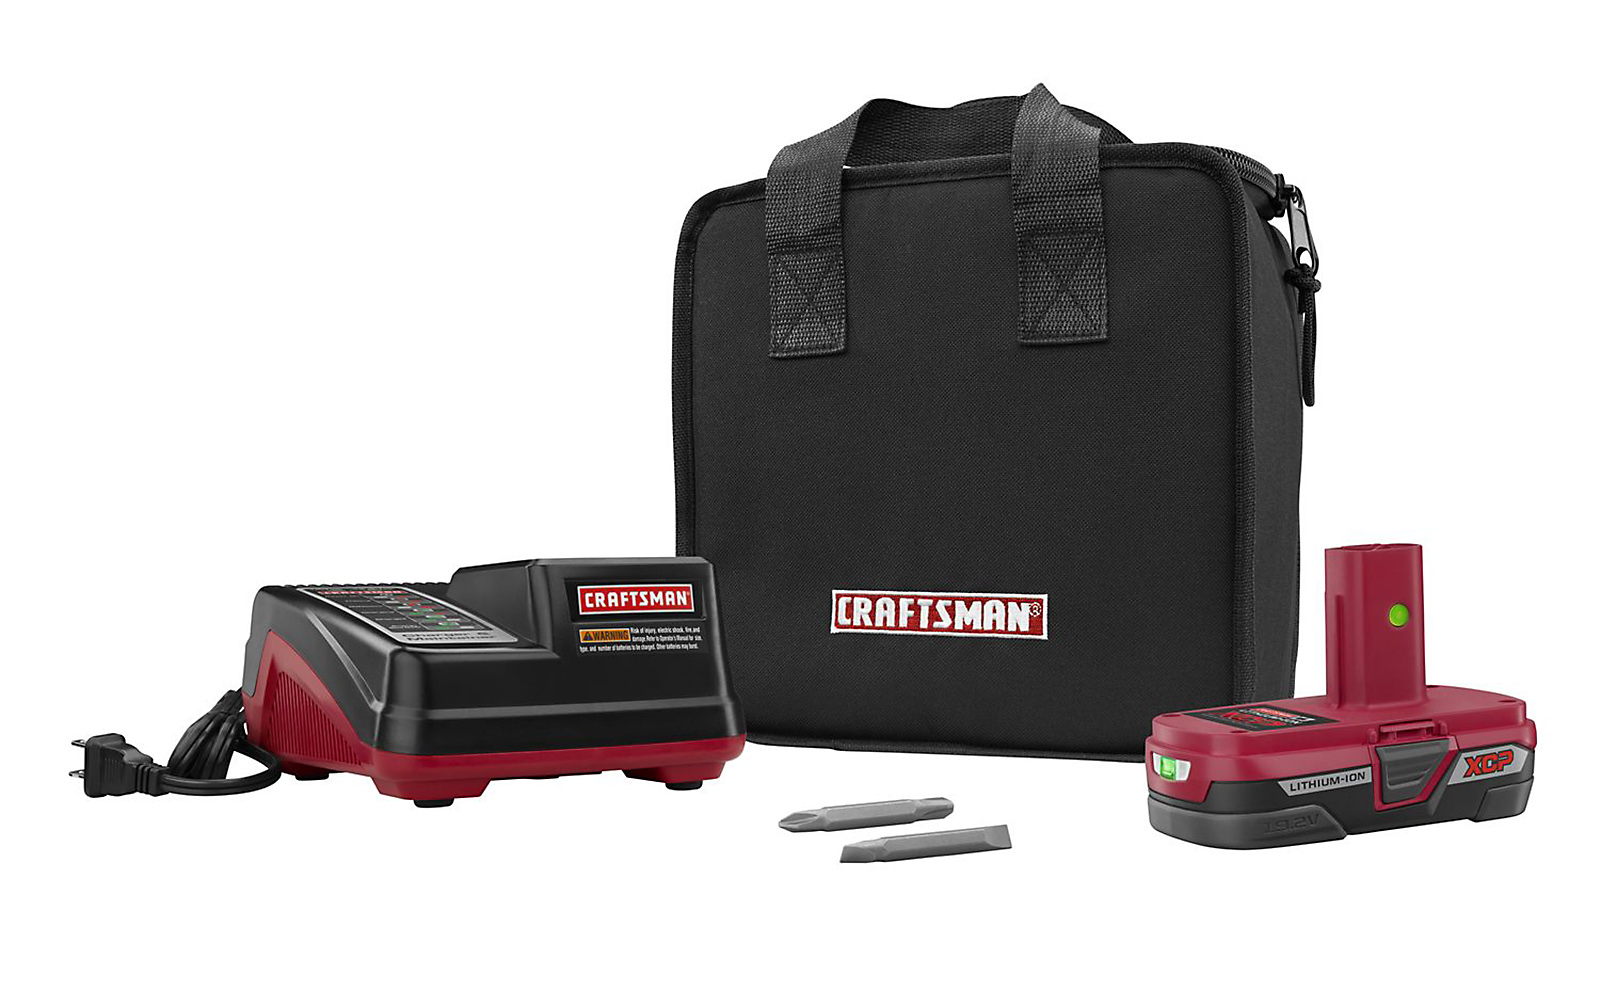 Craftsman C3 1/2-In Heavy-Duty Drill Kit Powered by XCP